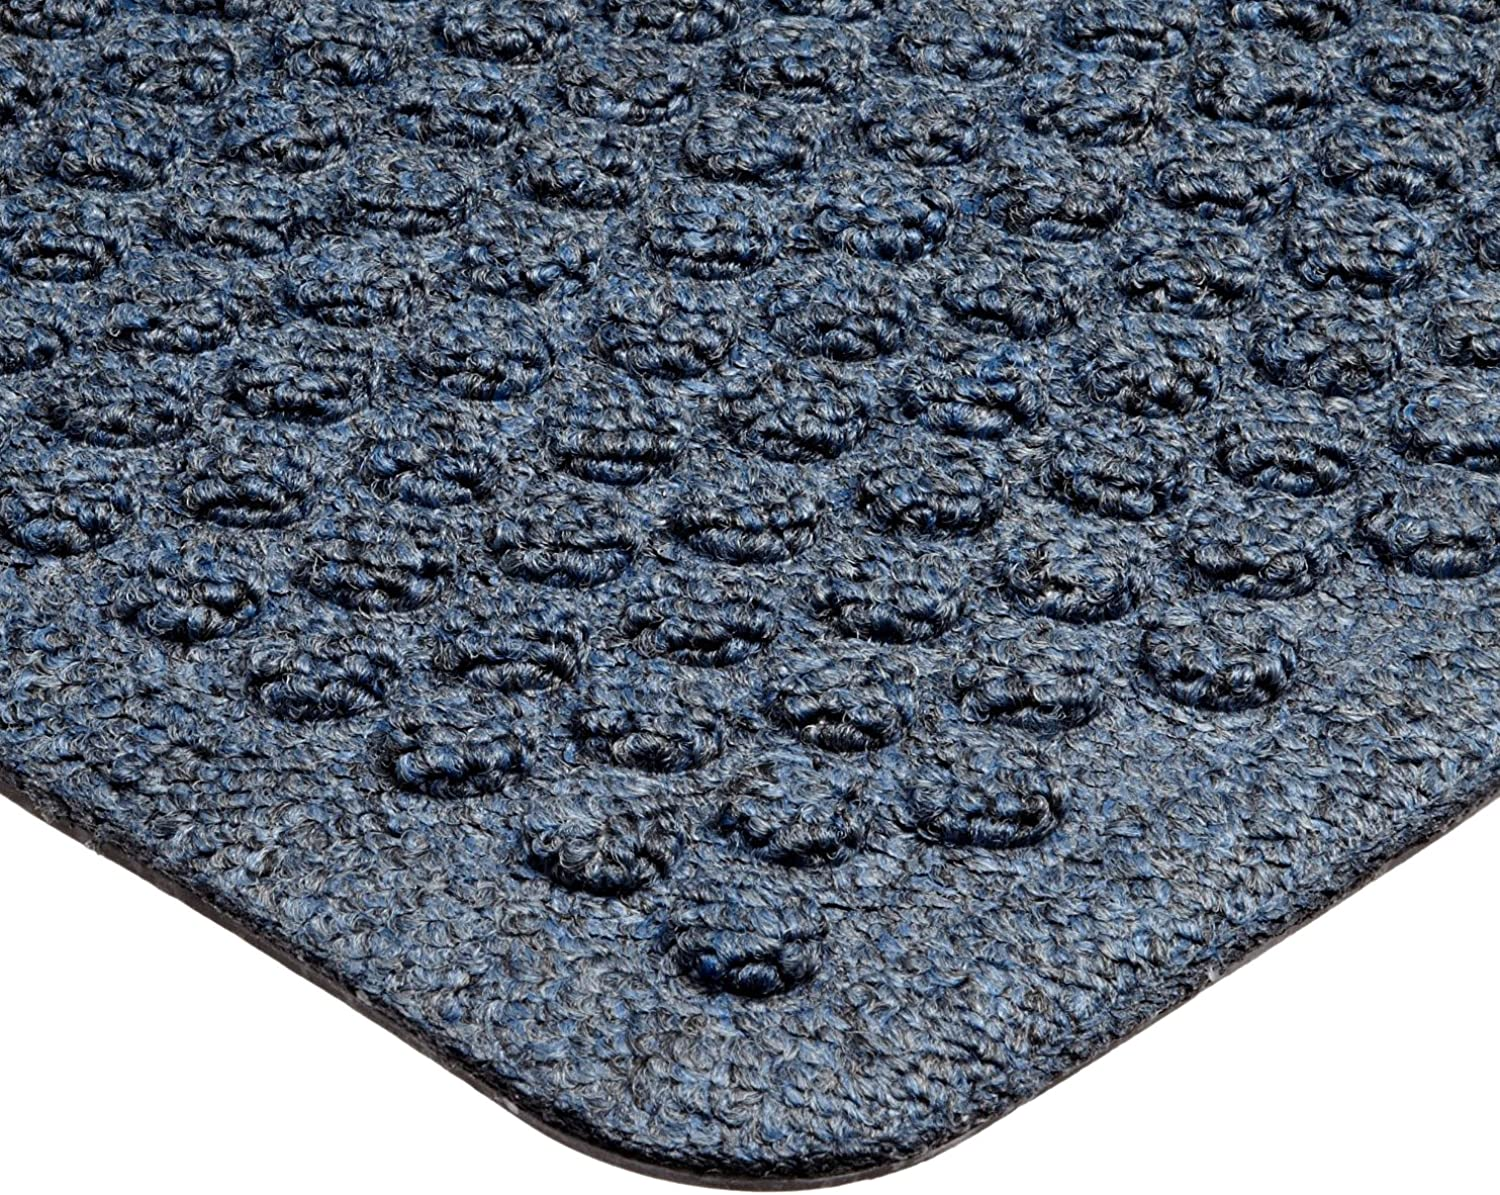 Notrax 150 Aqua Trap Entrance Mat, for Main Entranceways and Heavy Traffic Areas, 3' Width x 5' Length x 3 8  Thickness, Slate bluee